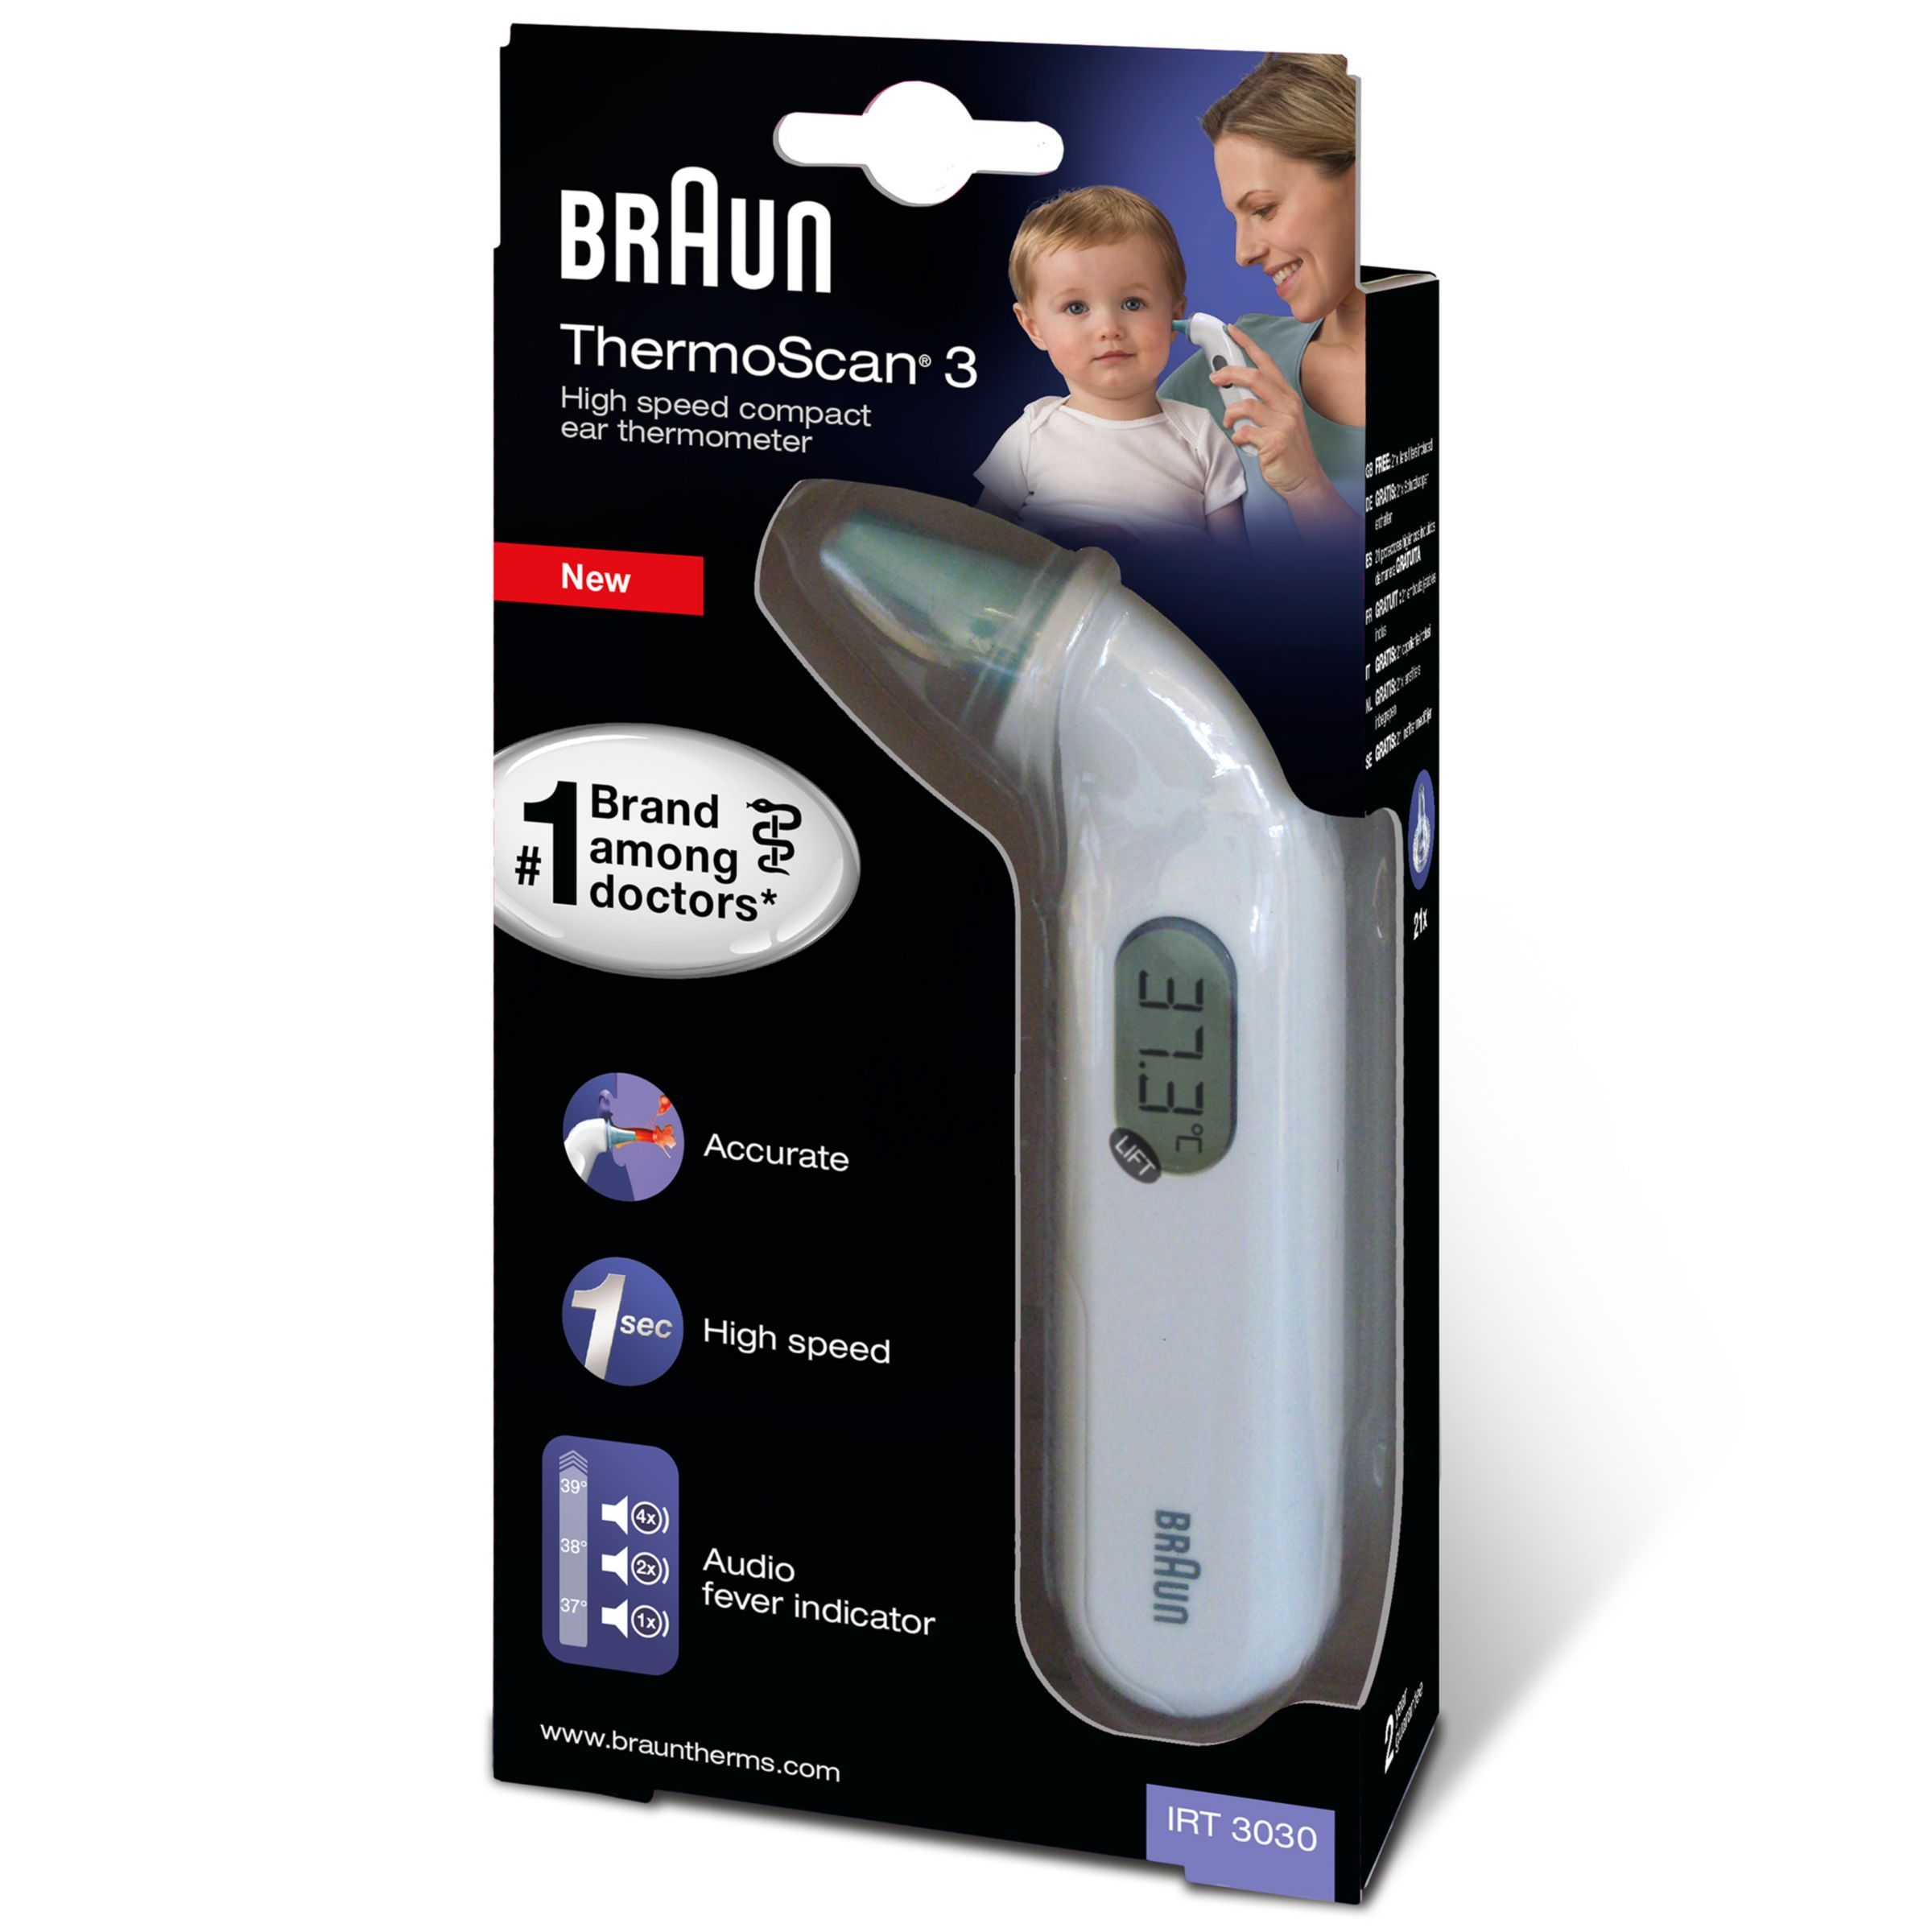 Braun ThermoScan 3 Ear Thermometer with